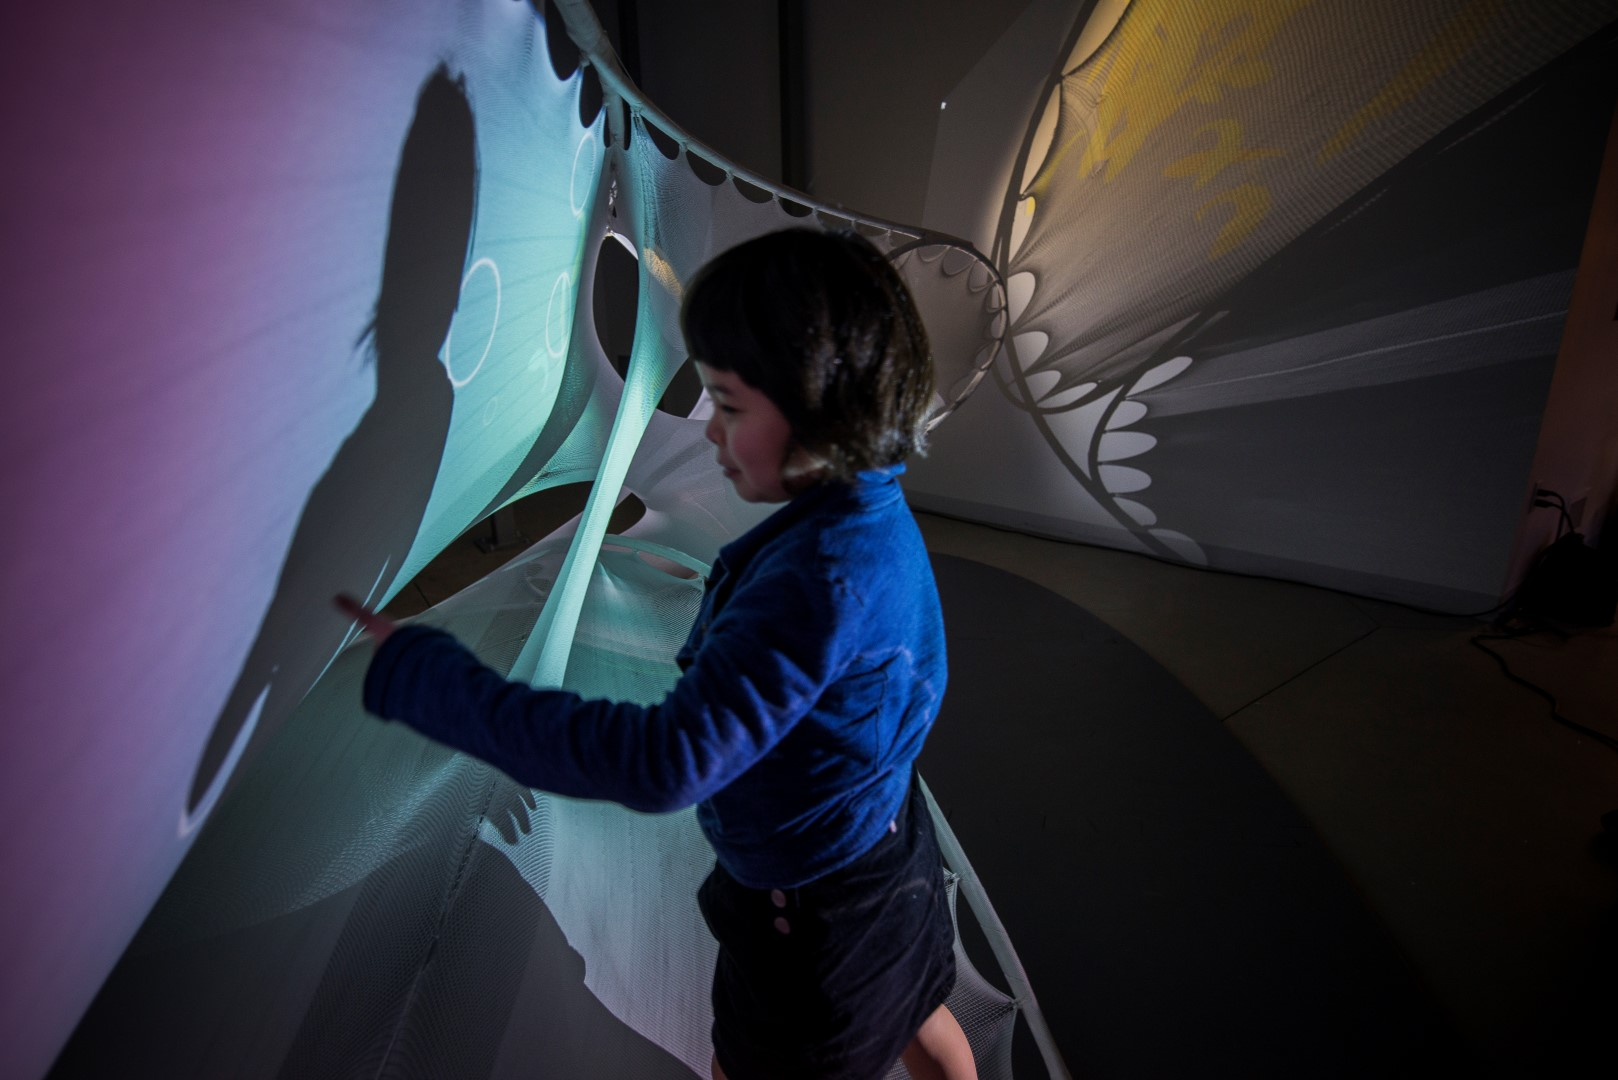 Ara playing with the  sensoryPLAYSCAPE | stretchSWARM  prototype which combines textile-hybrid technology with an interface for interacting with swarms of fish.